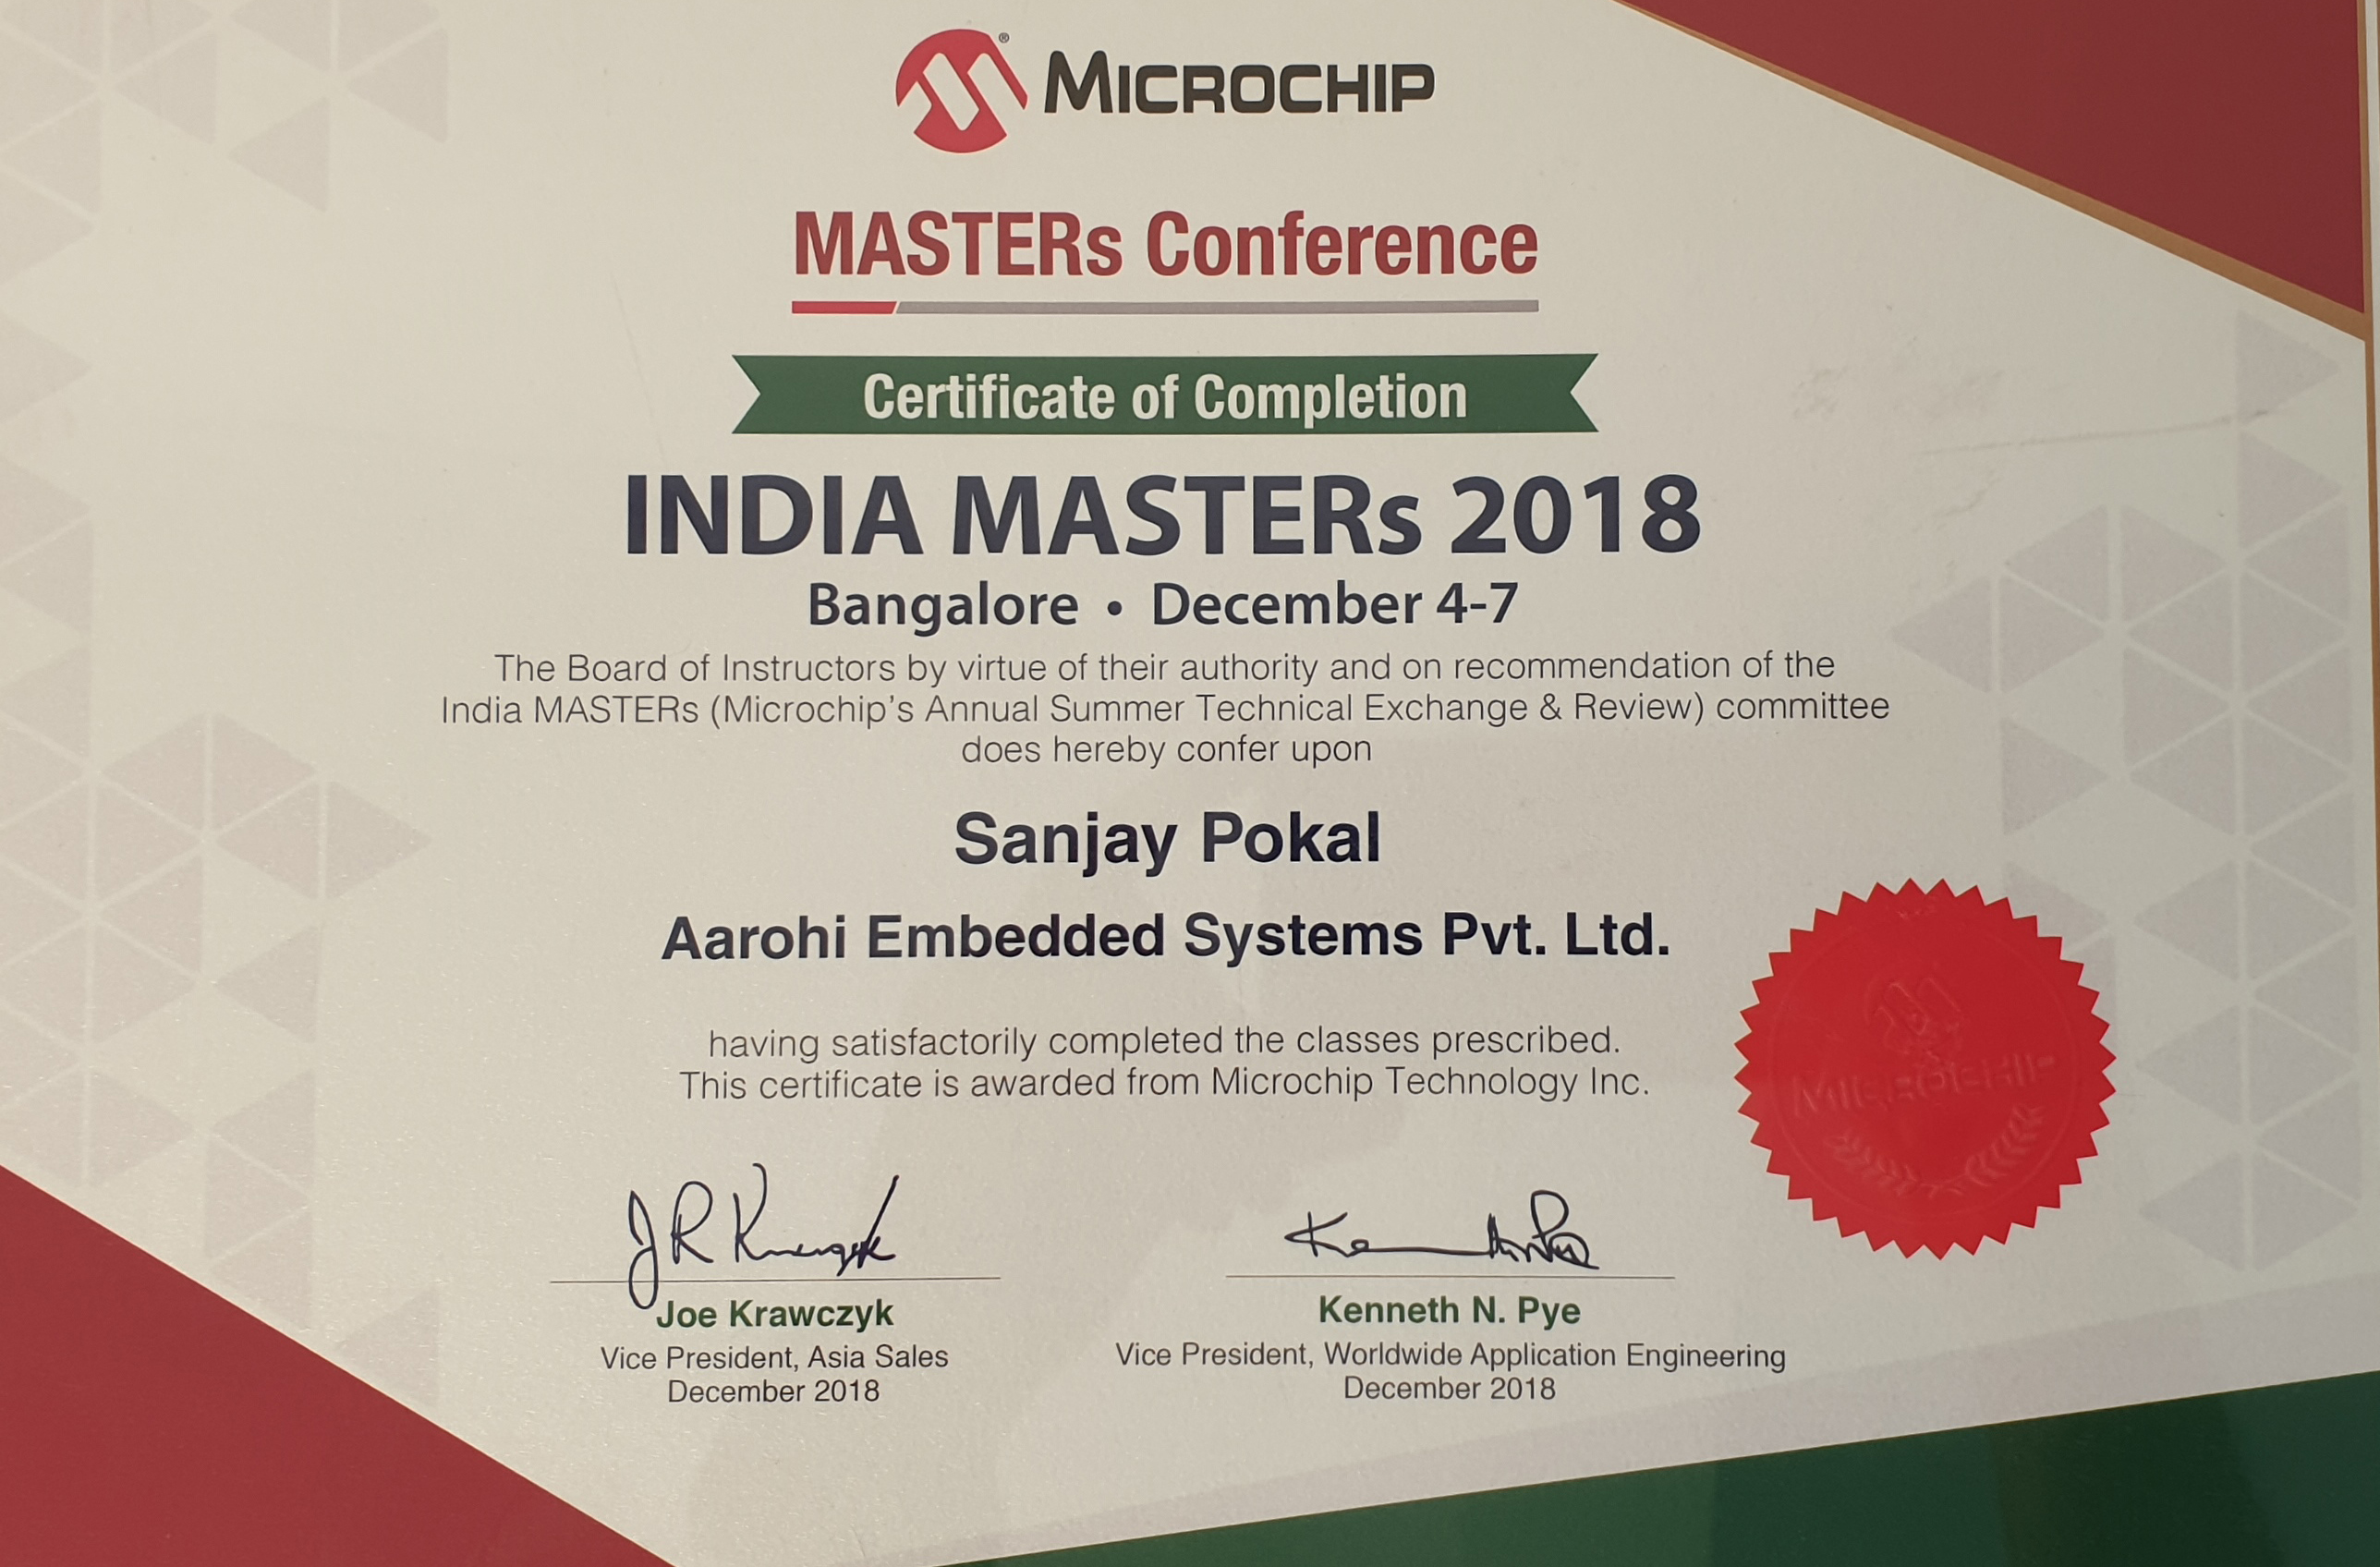 Aarohi Embedded Systems pvt ltd received Appreciation from Microchip India Masters conference